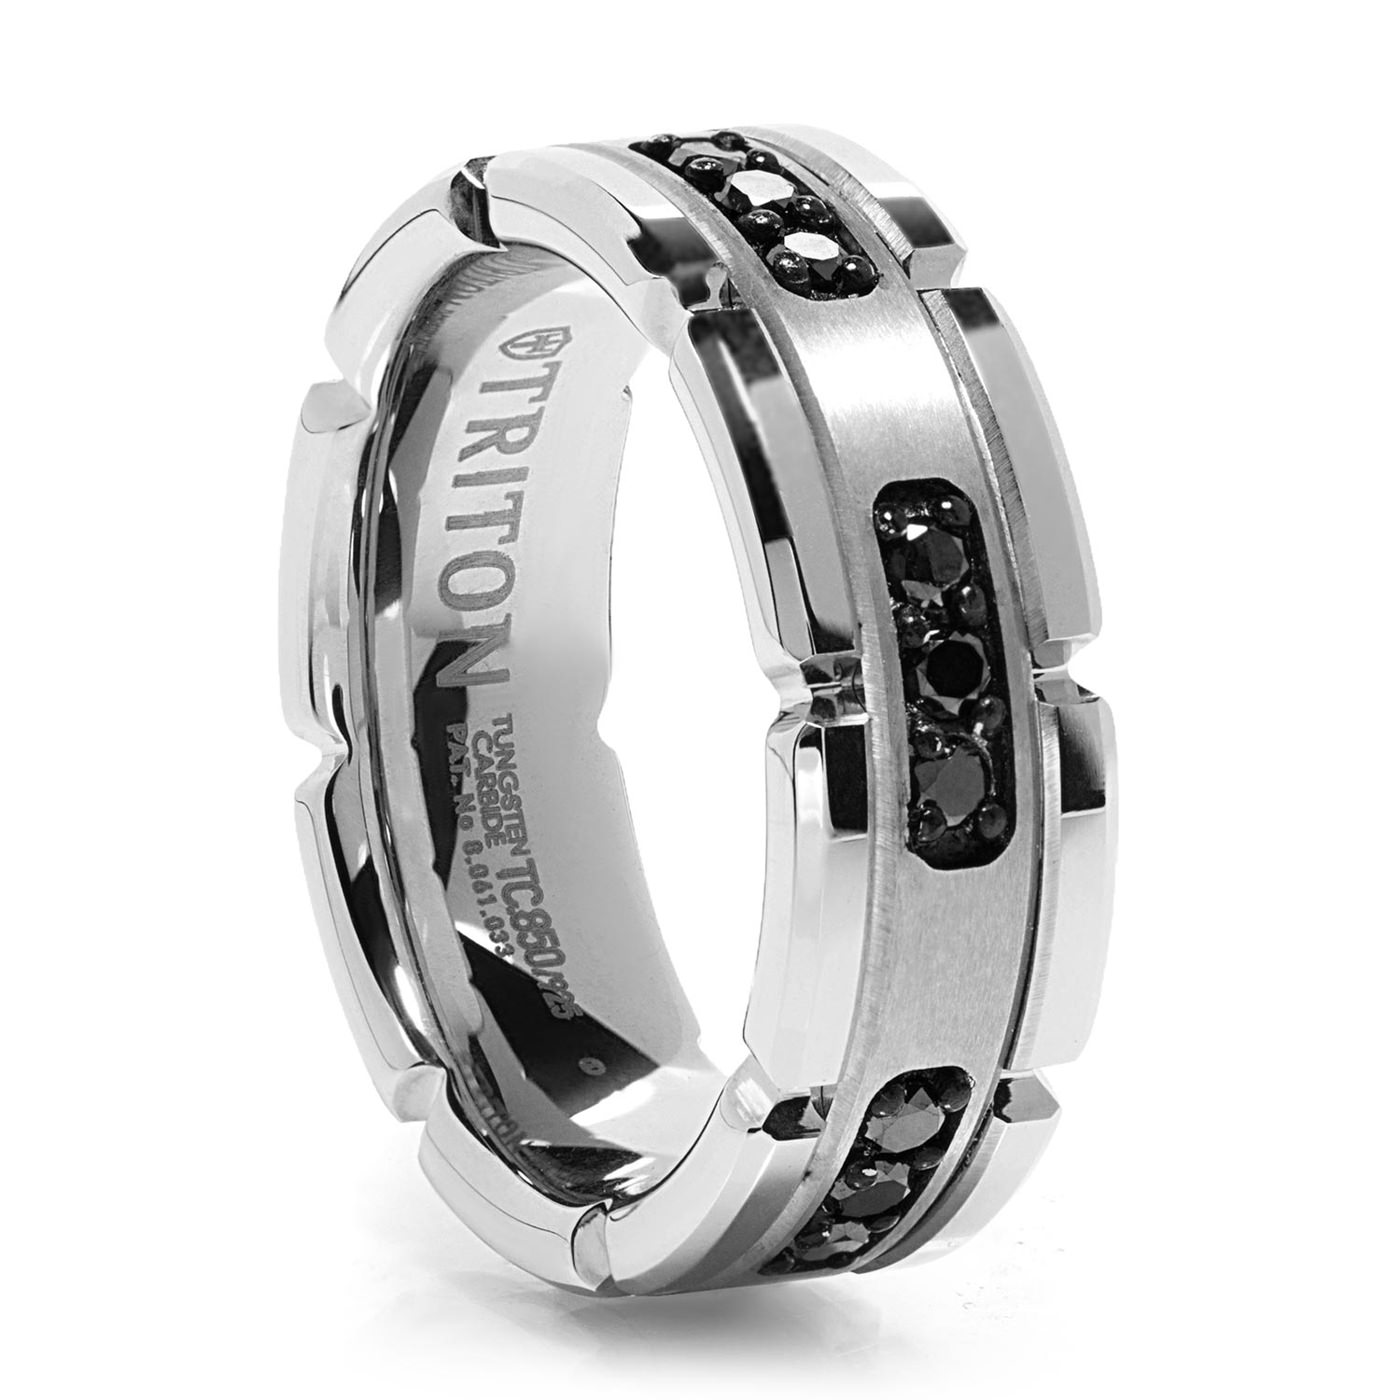 wedding over via and etsy engrave bands black gold sterling ring wide pin band personalize plated engravable mens silver